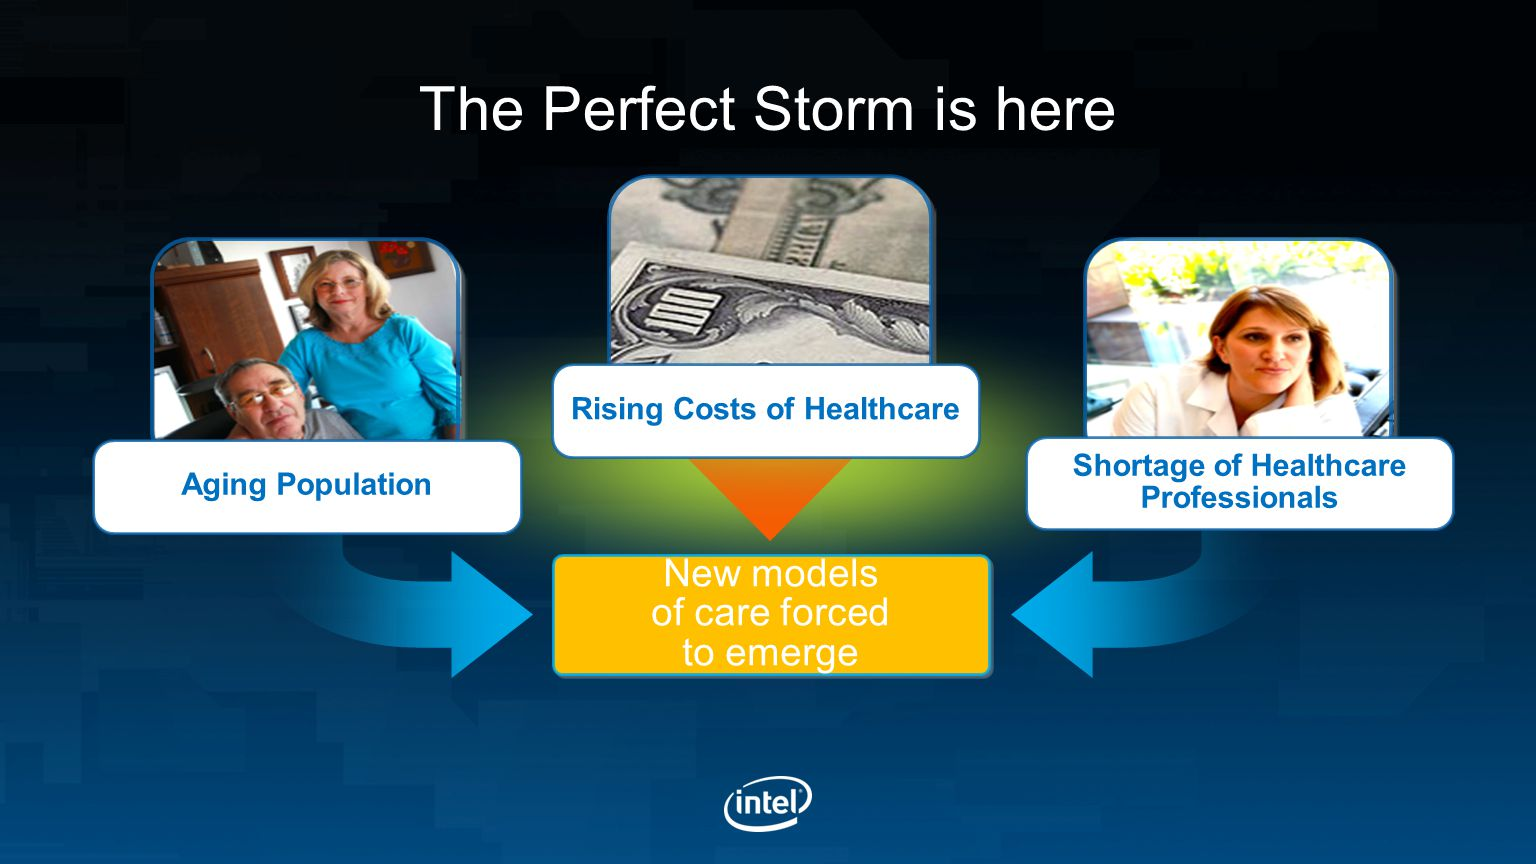 The Perfect Storm is here